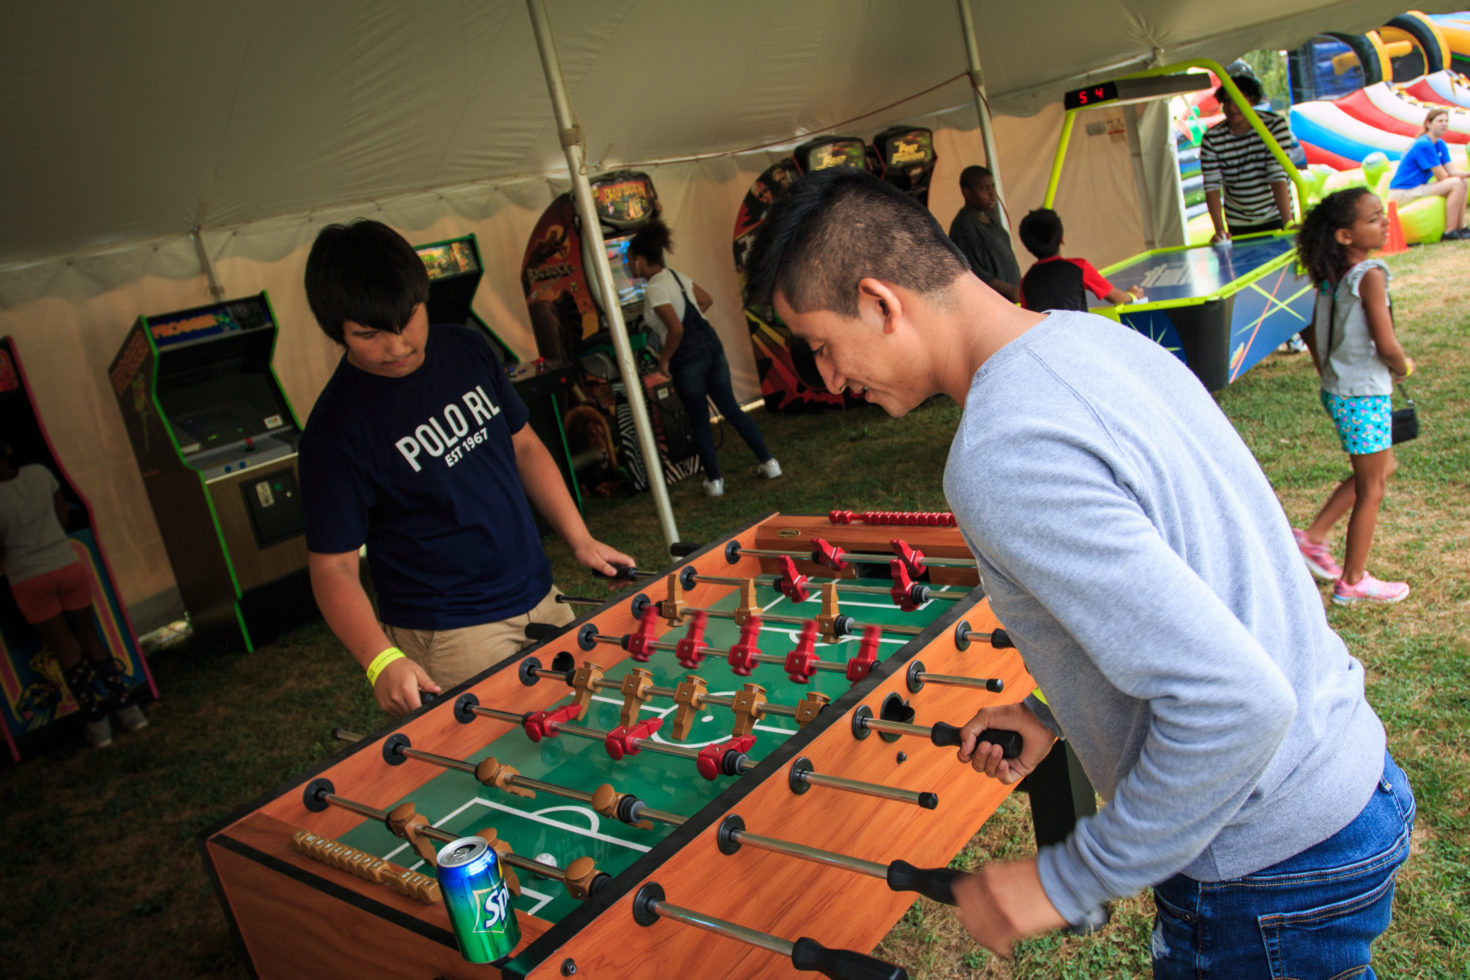 2 guys playing foosball